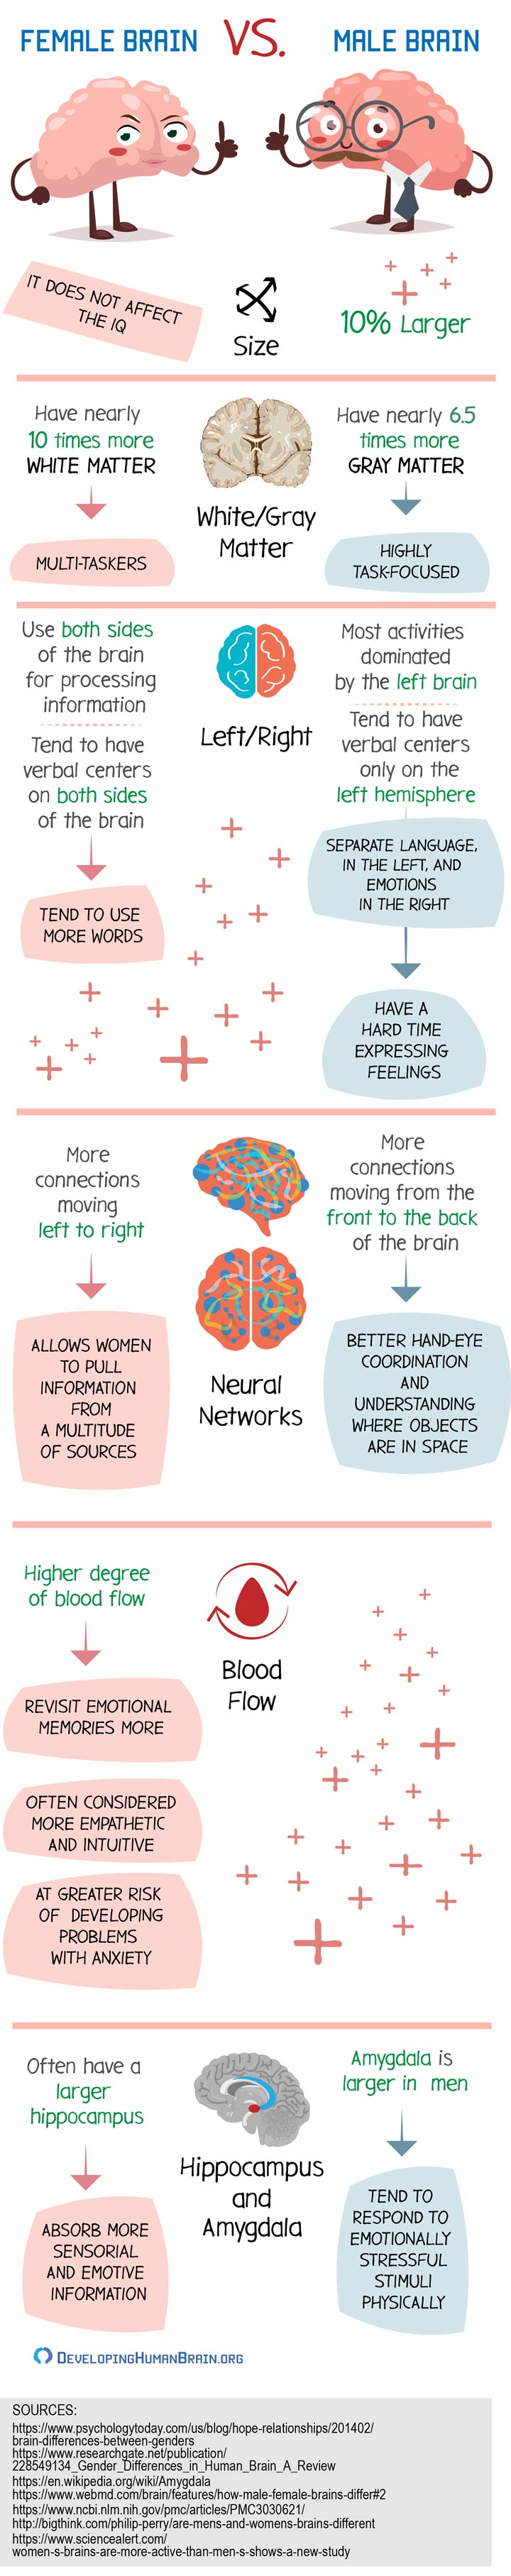 female brain vs male brain infographic